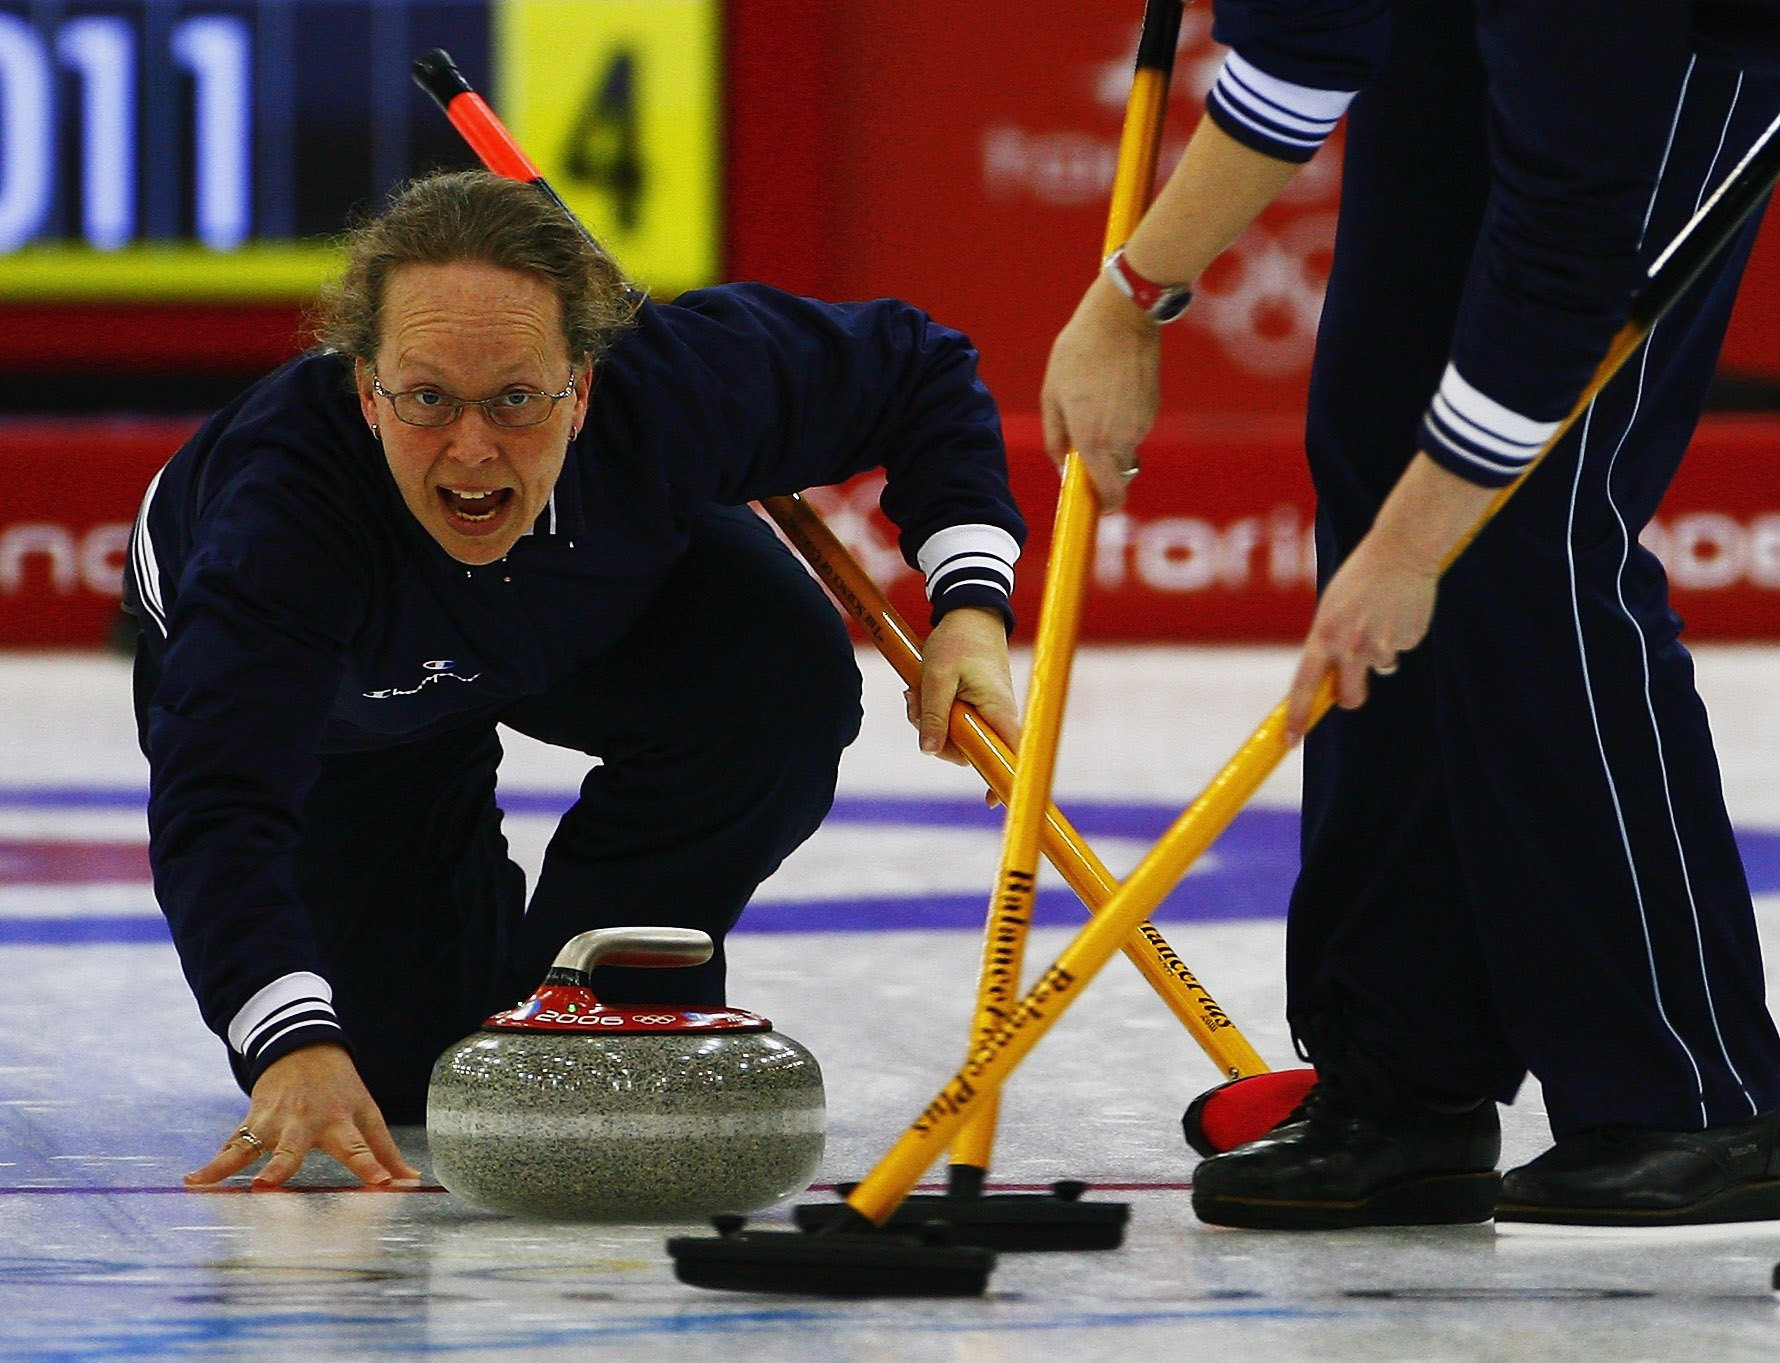 Dordi Nordby was a mainstay of the Norwegian women's curling team from 1981 to 2007, competing in three Winter Olympic Games ©Getty Images